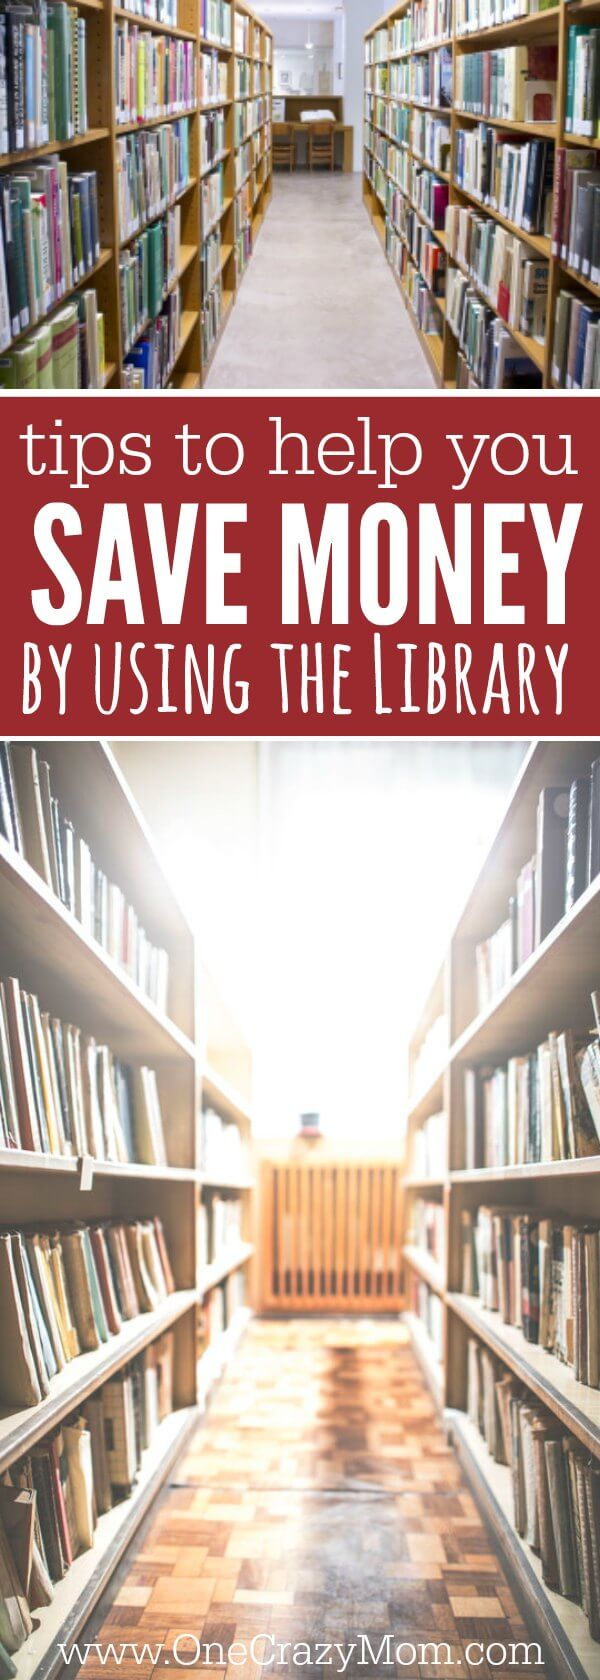 Find out how to save money by visiting your public library. 3 Tips to save money at your city library. How to save money by using your city library! The public library has books, movies and more!